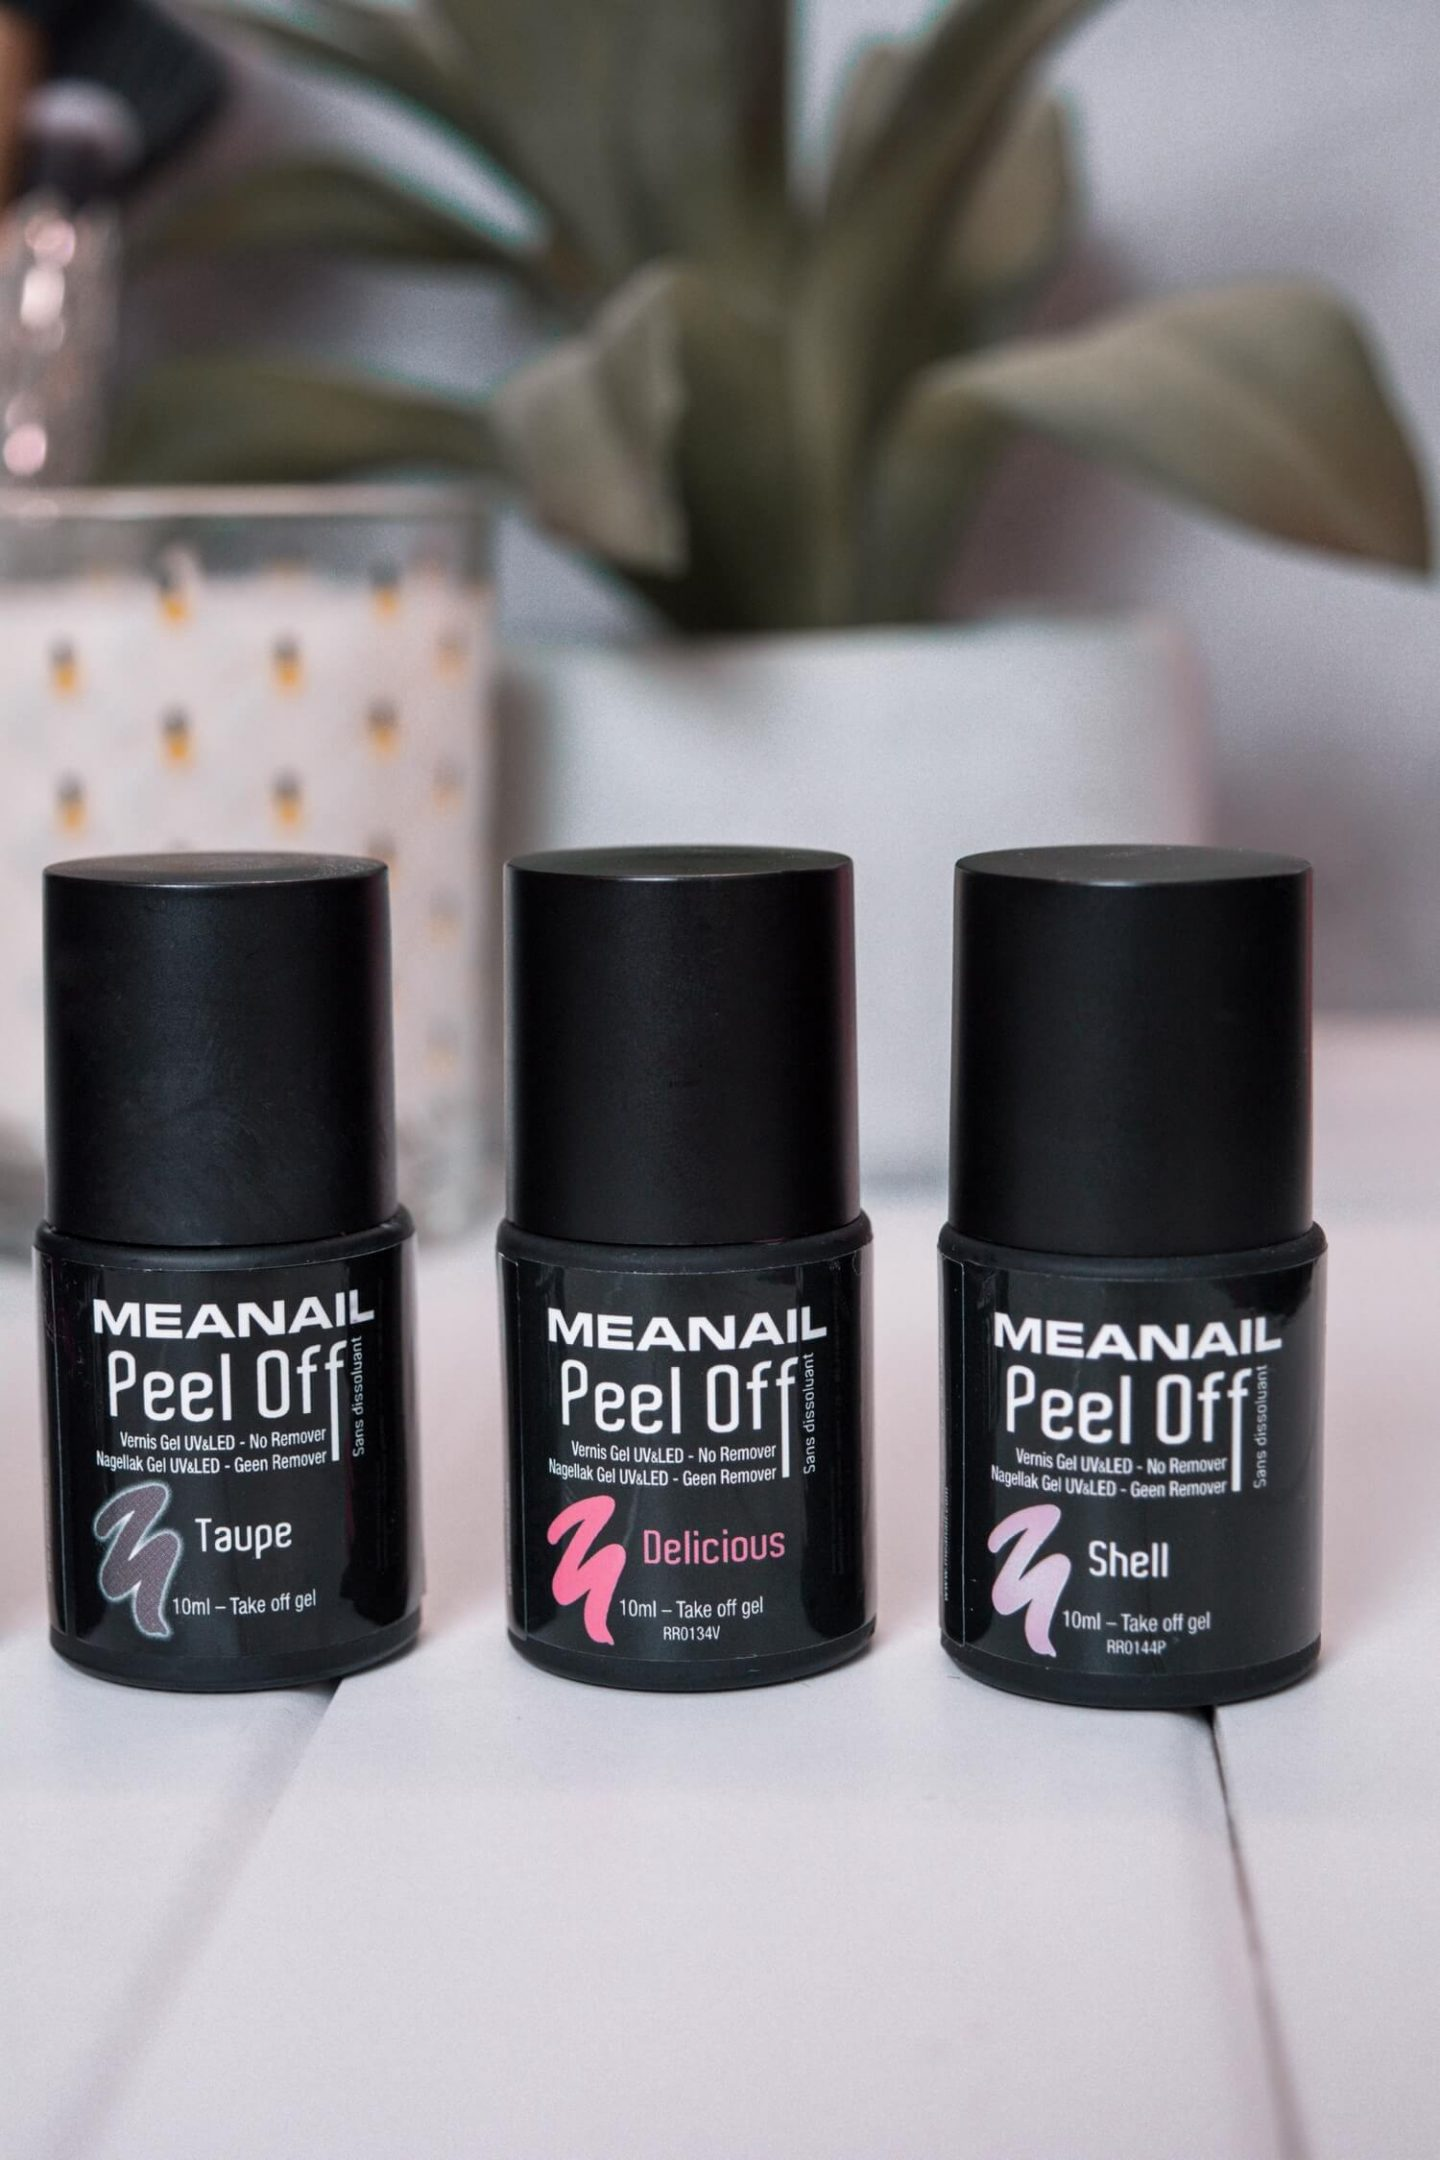 Les vernis peel-off avec Meanails Paris